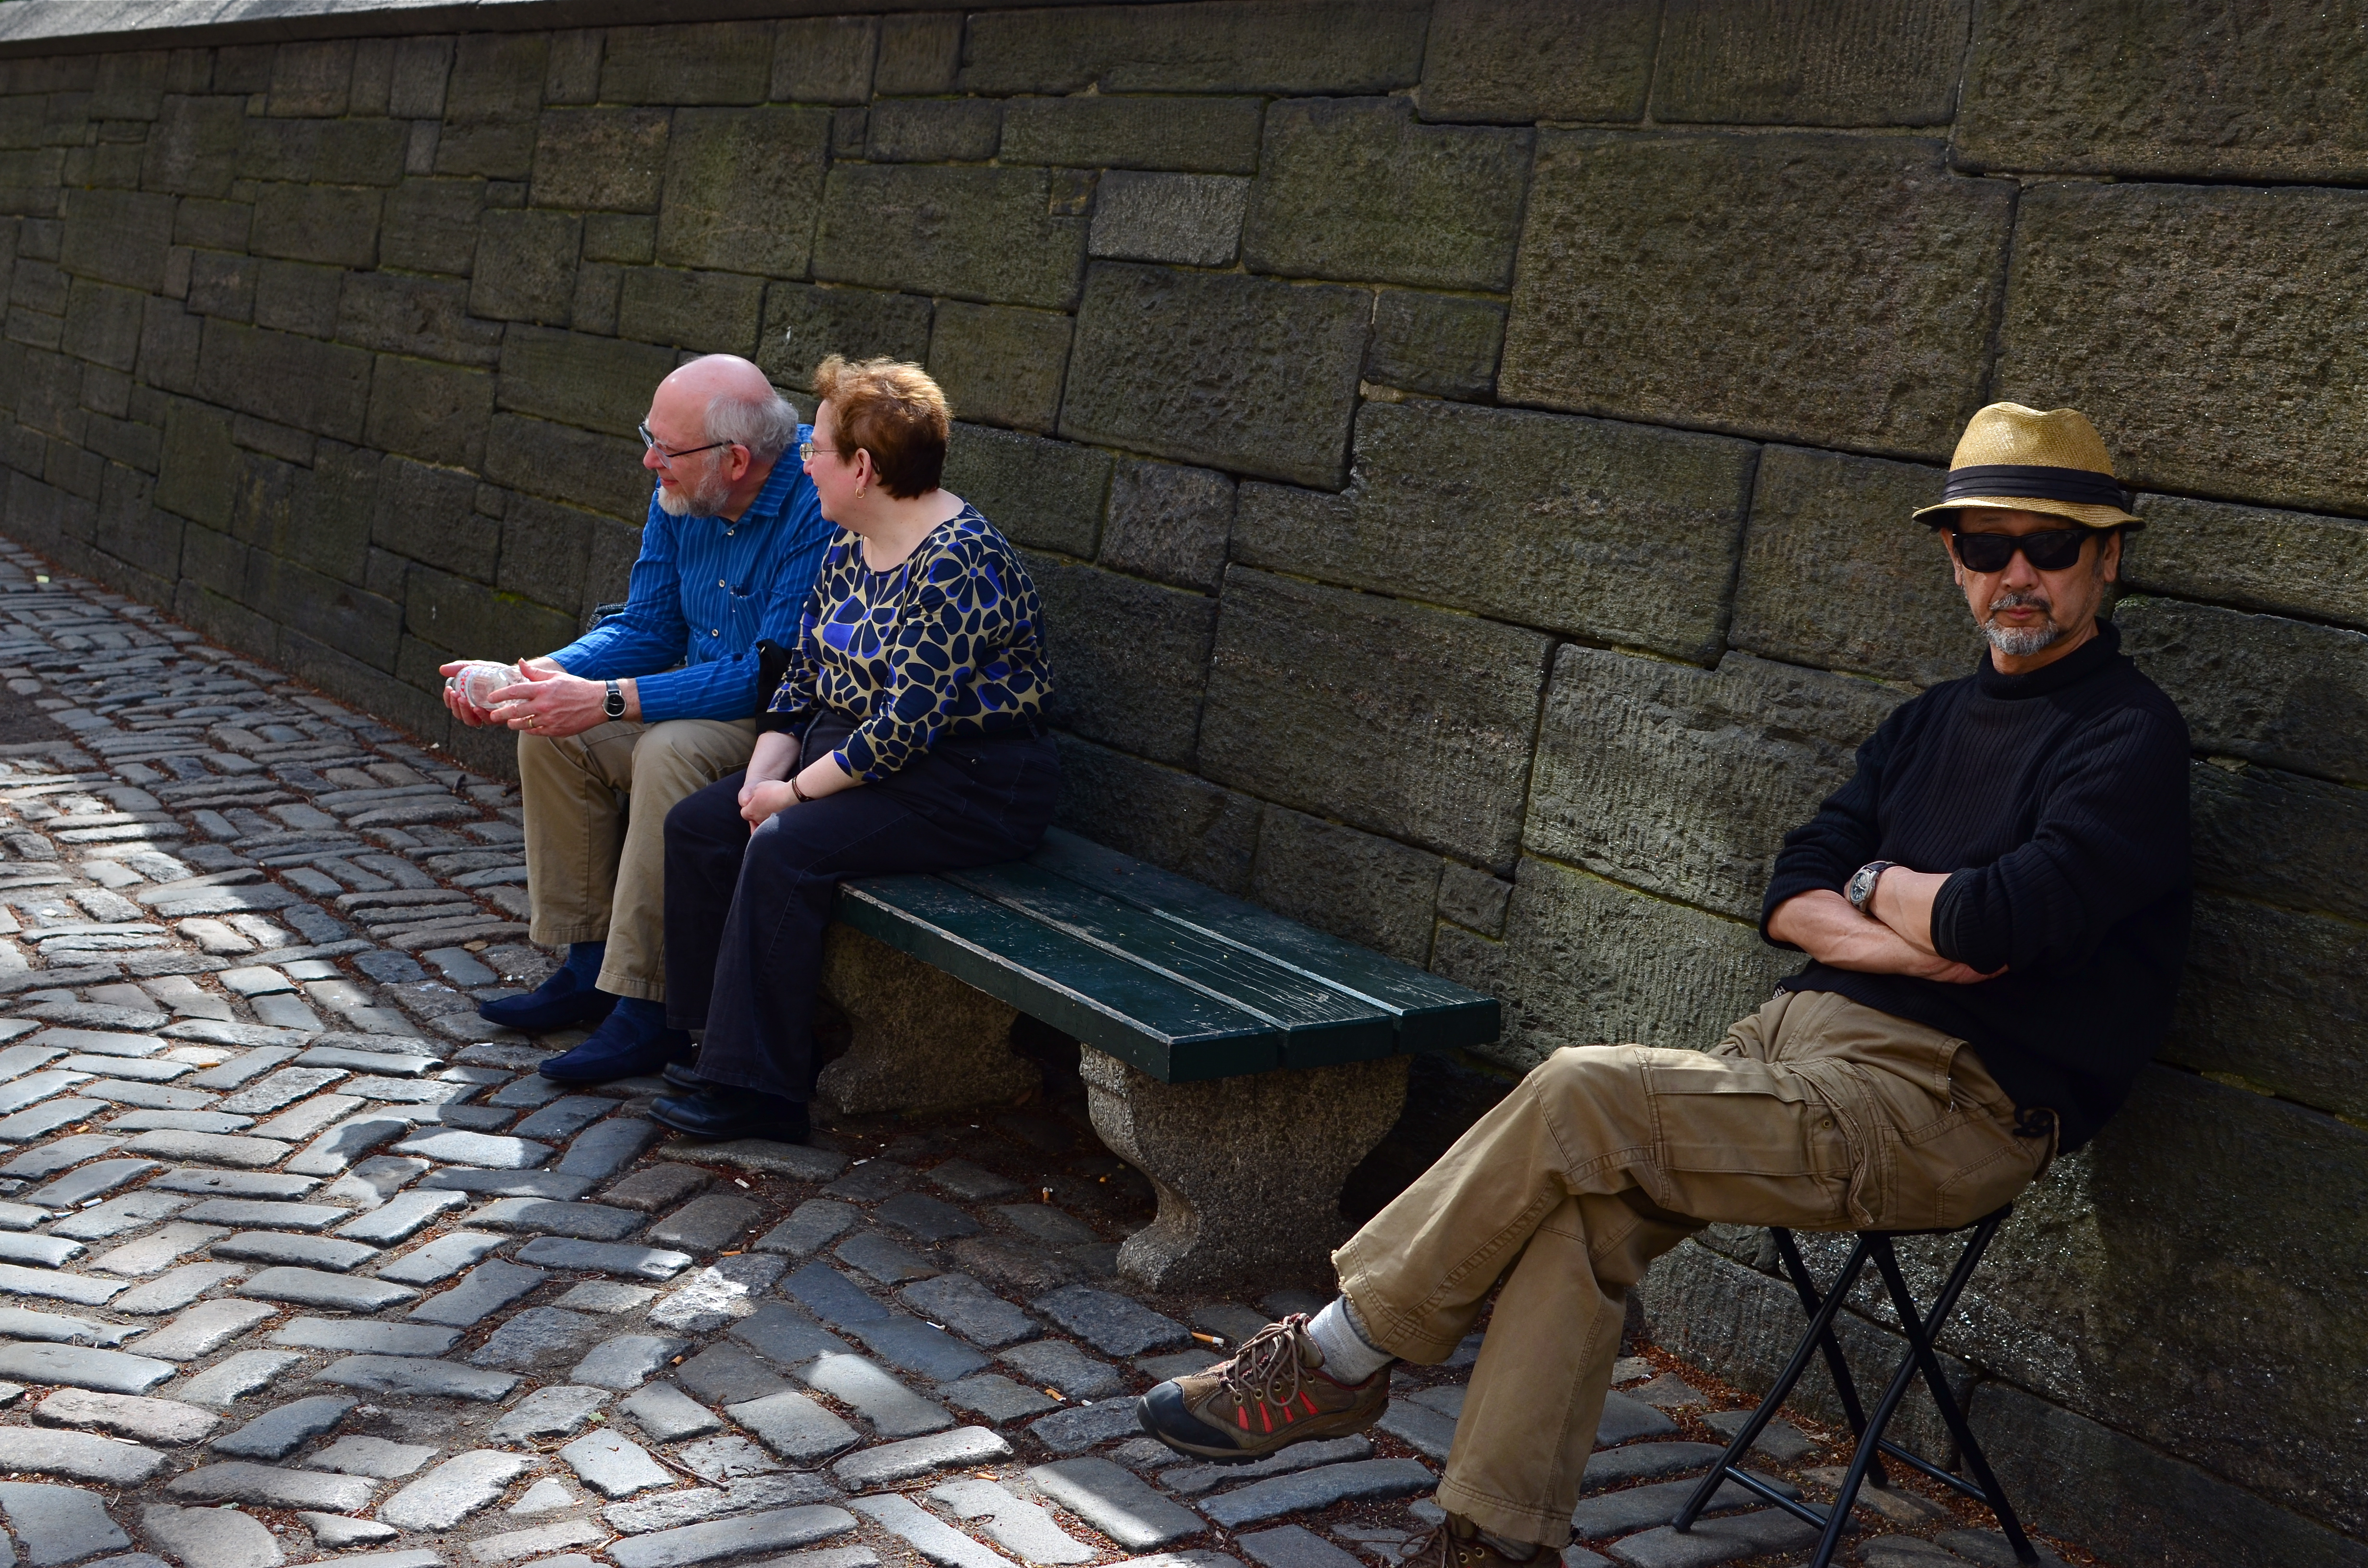 Even if people in the picture are not drunk or dying, it's still street photography.